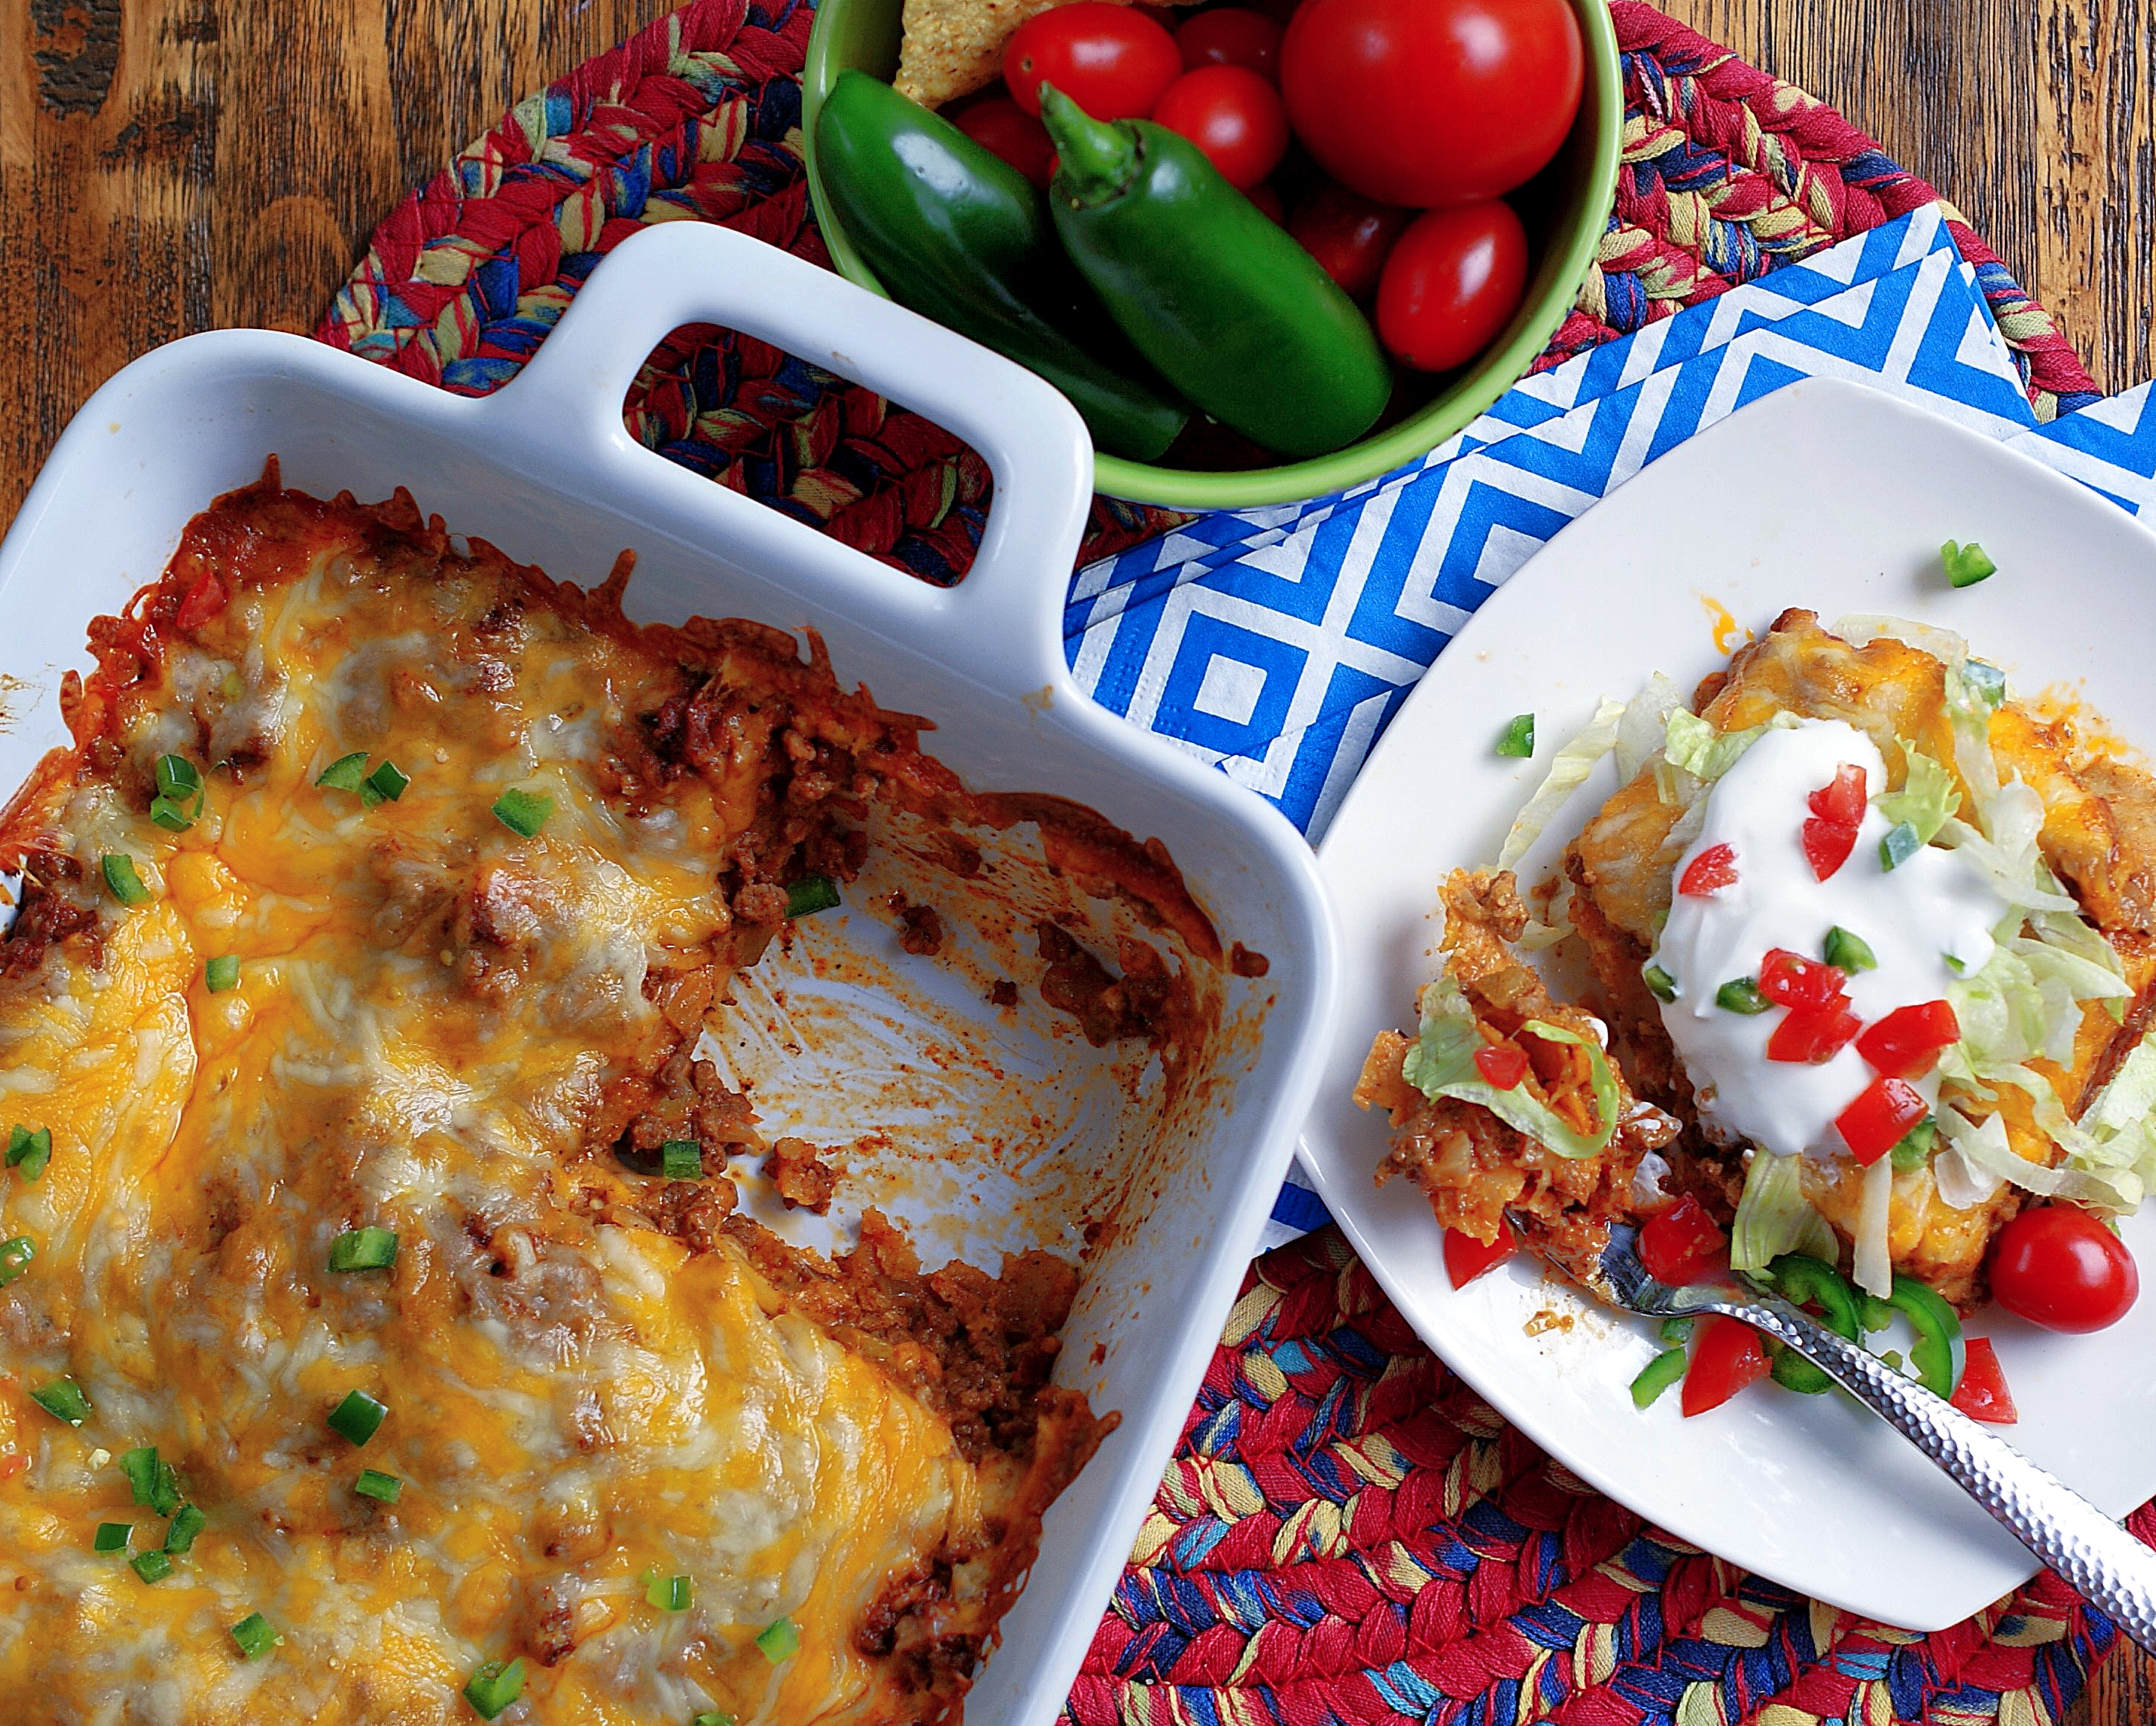 An aerial view of a dish of layered beef enchiladas and a slice of the beef enchiladas on a plate.